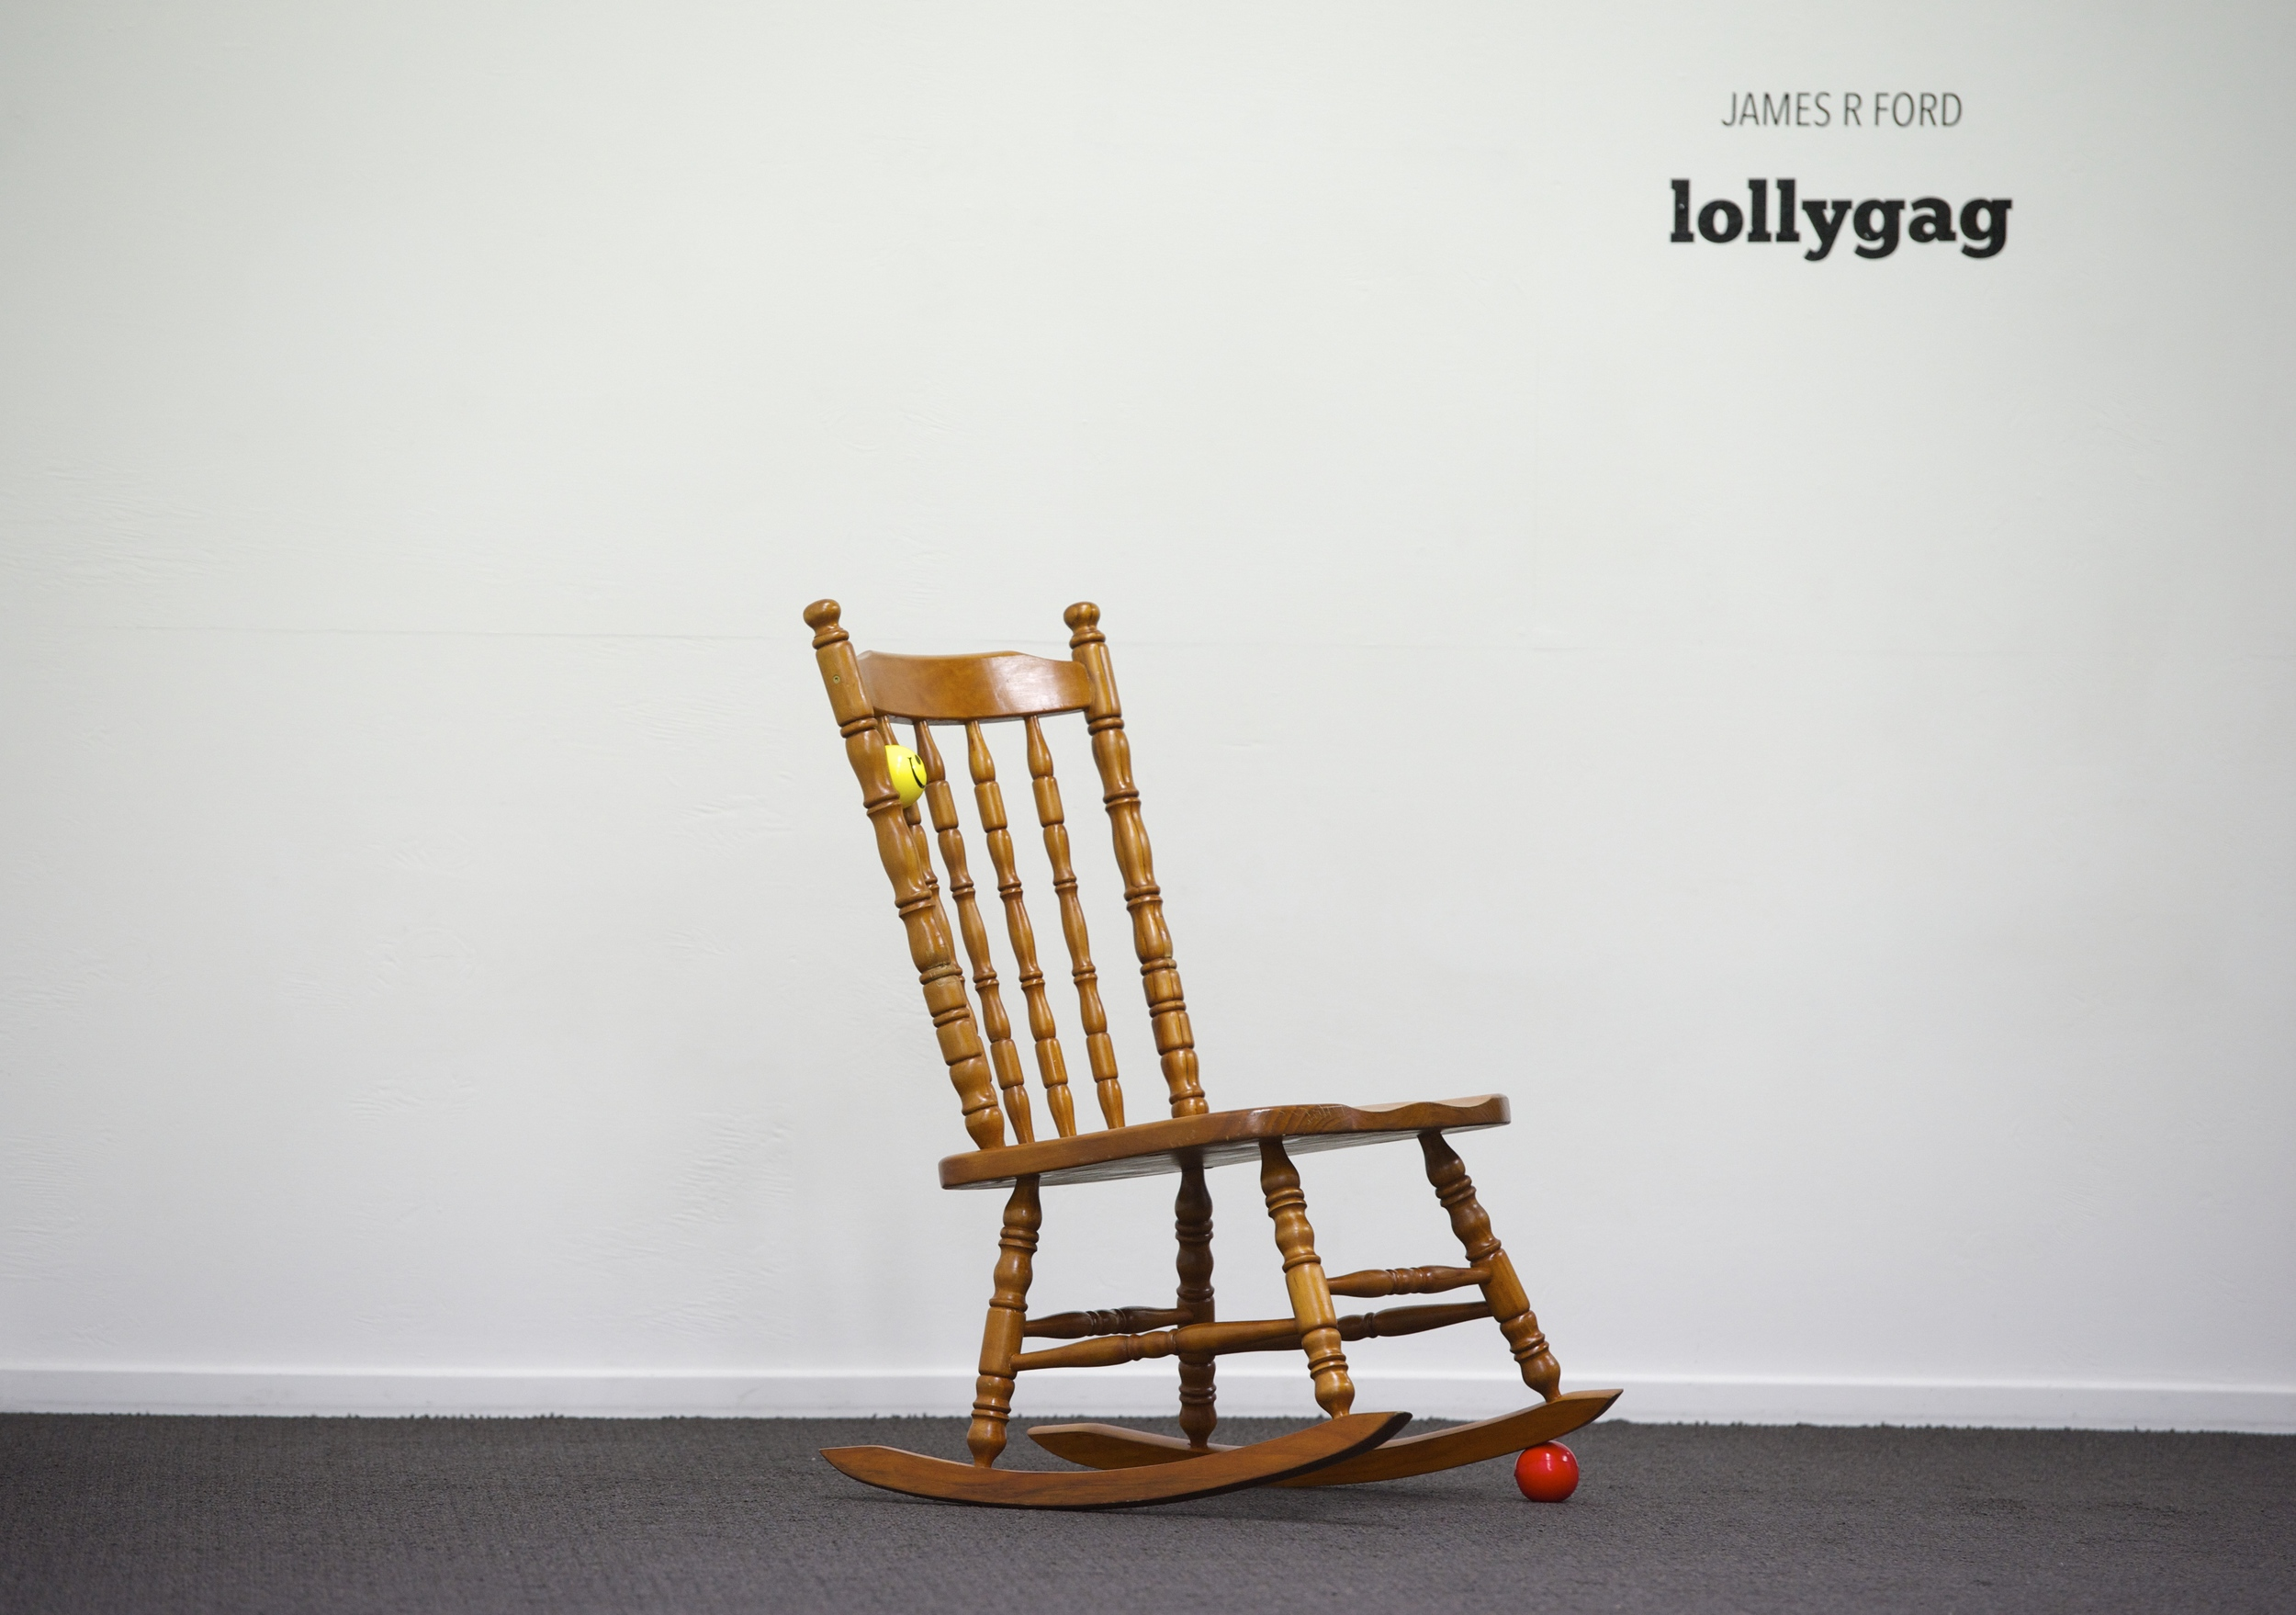 Back and forth and round and round  2014  Pine rocking chair, wood stain, foam stress balls  114 (h) x 64 (w) x 76cm (d)